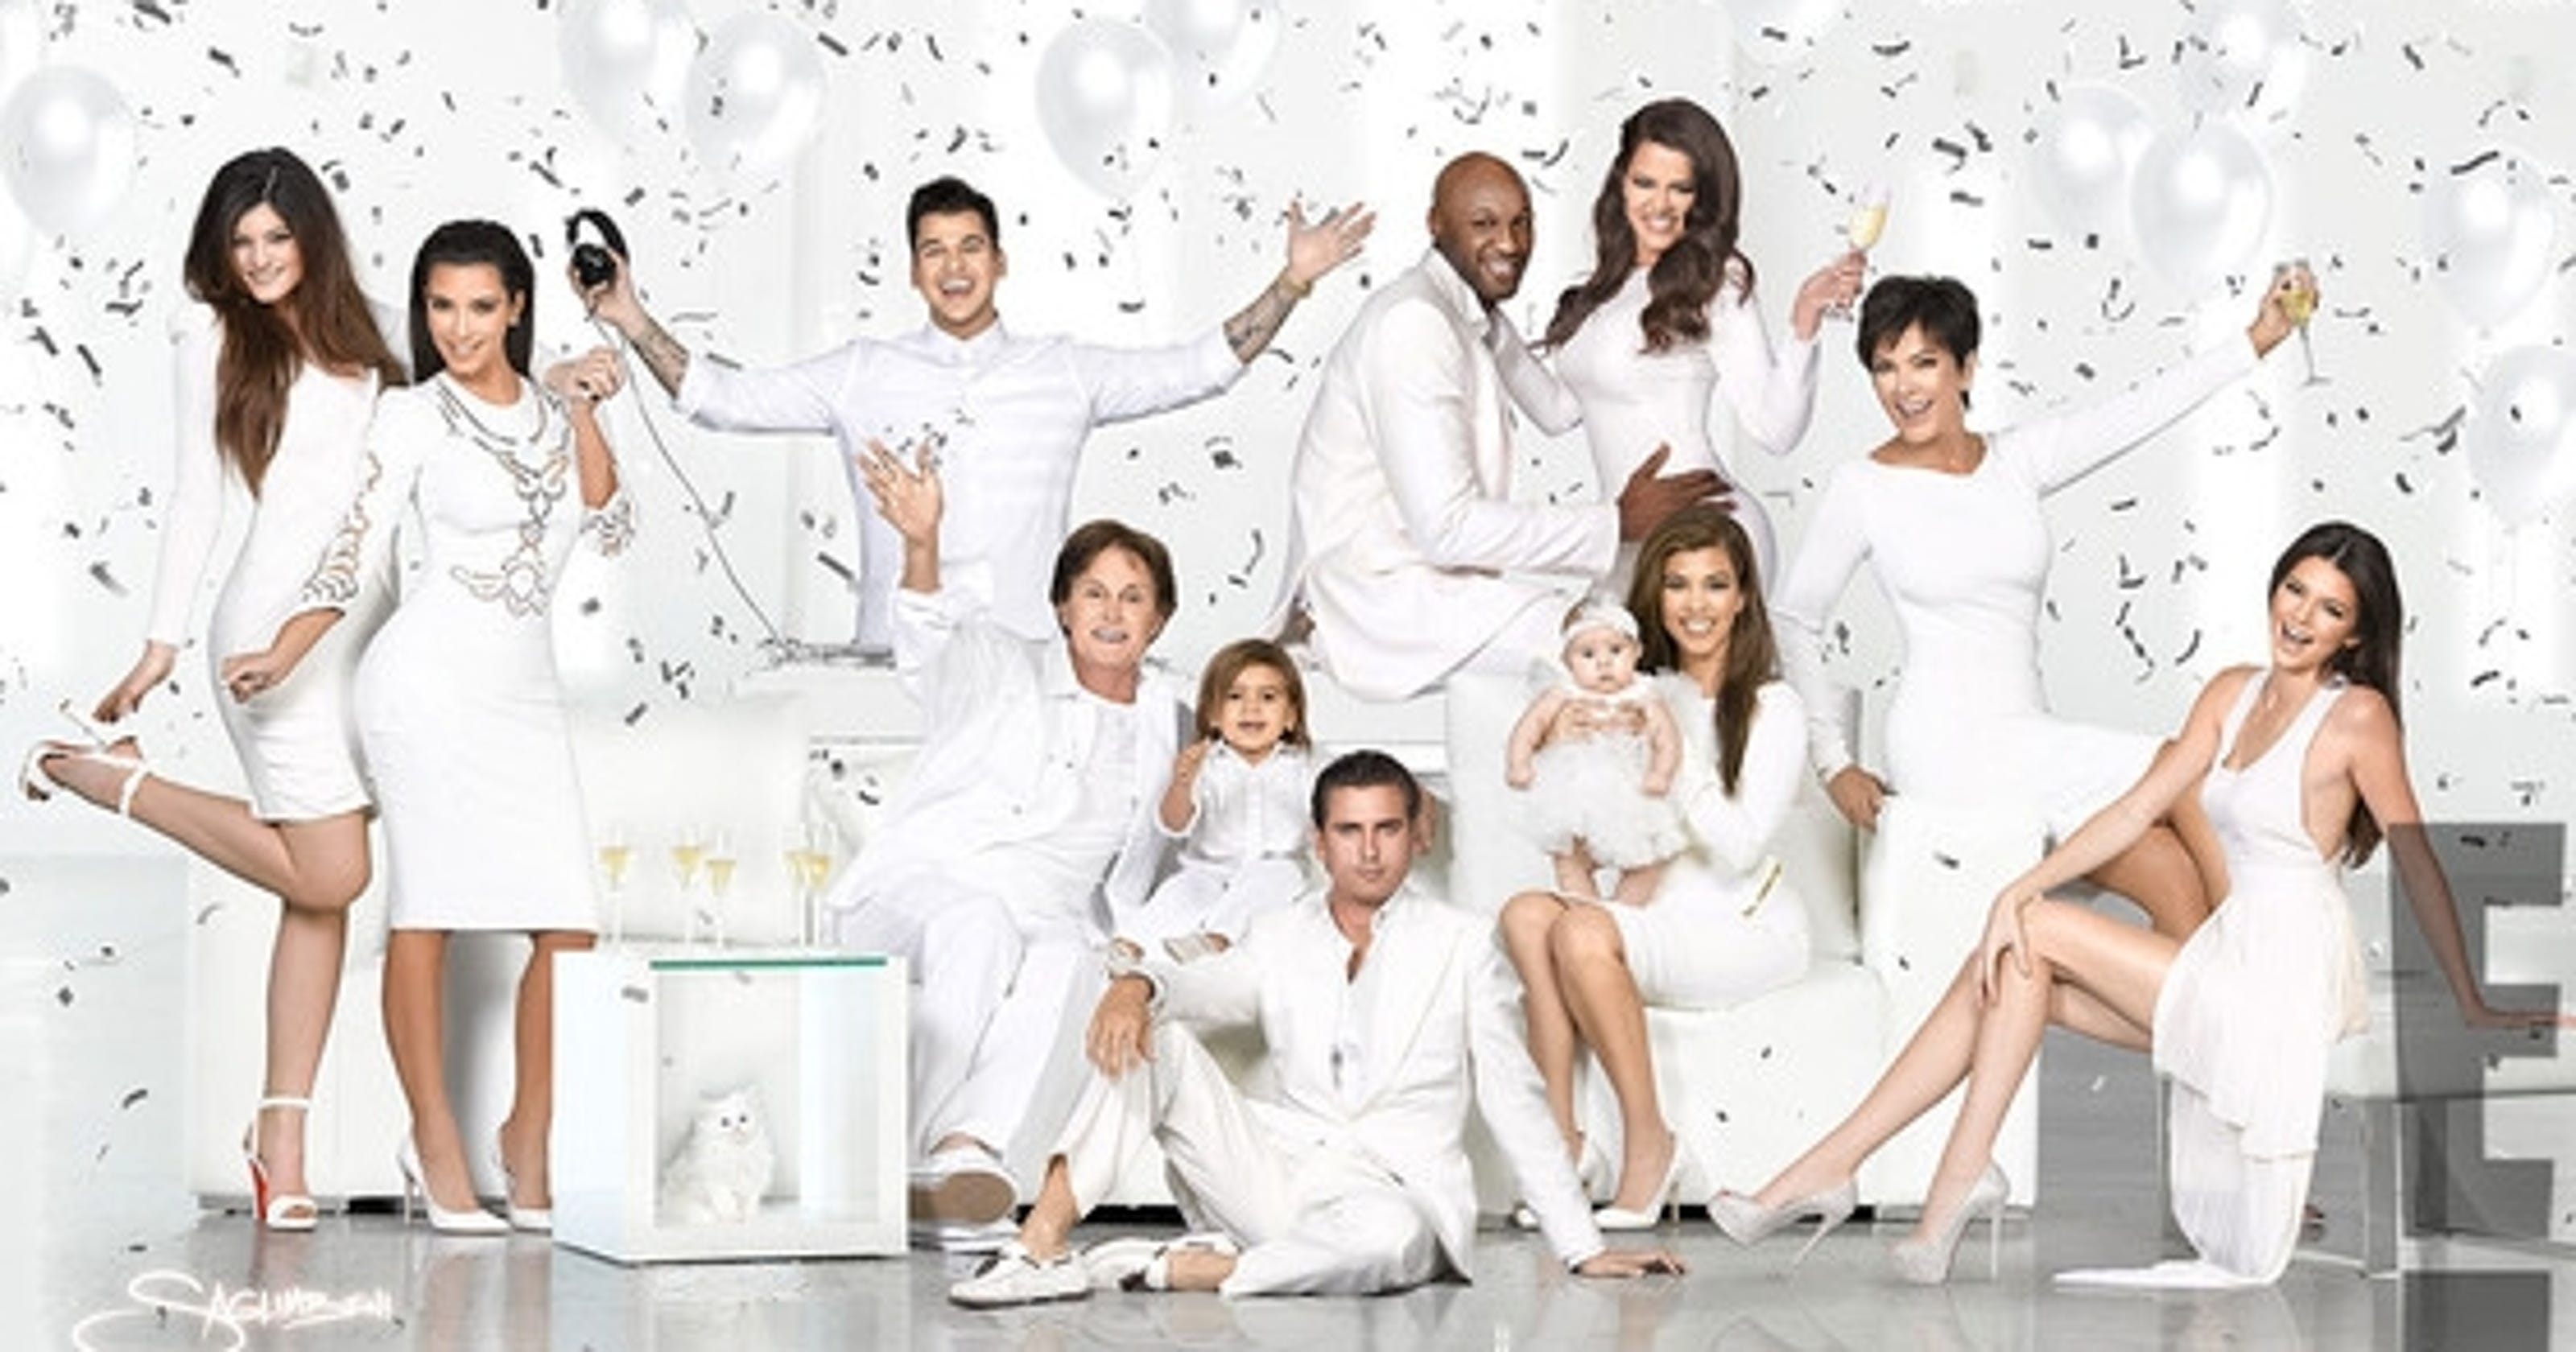 Kim unveils all-white Kardashian family Christmas card 2012